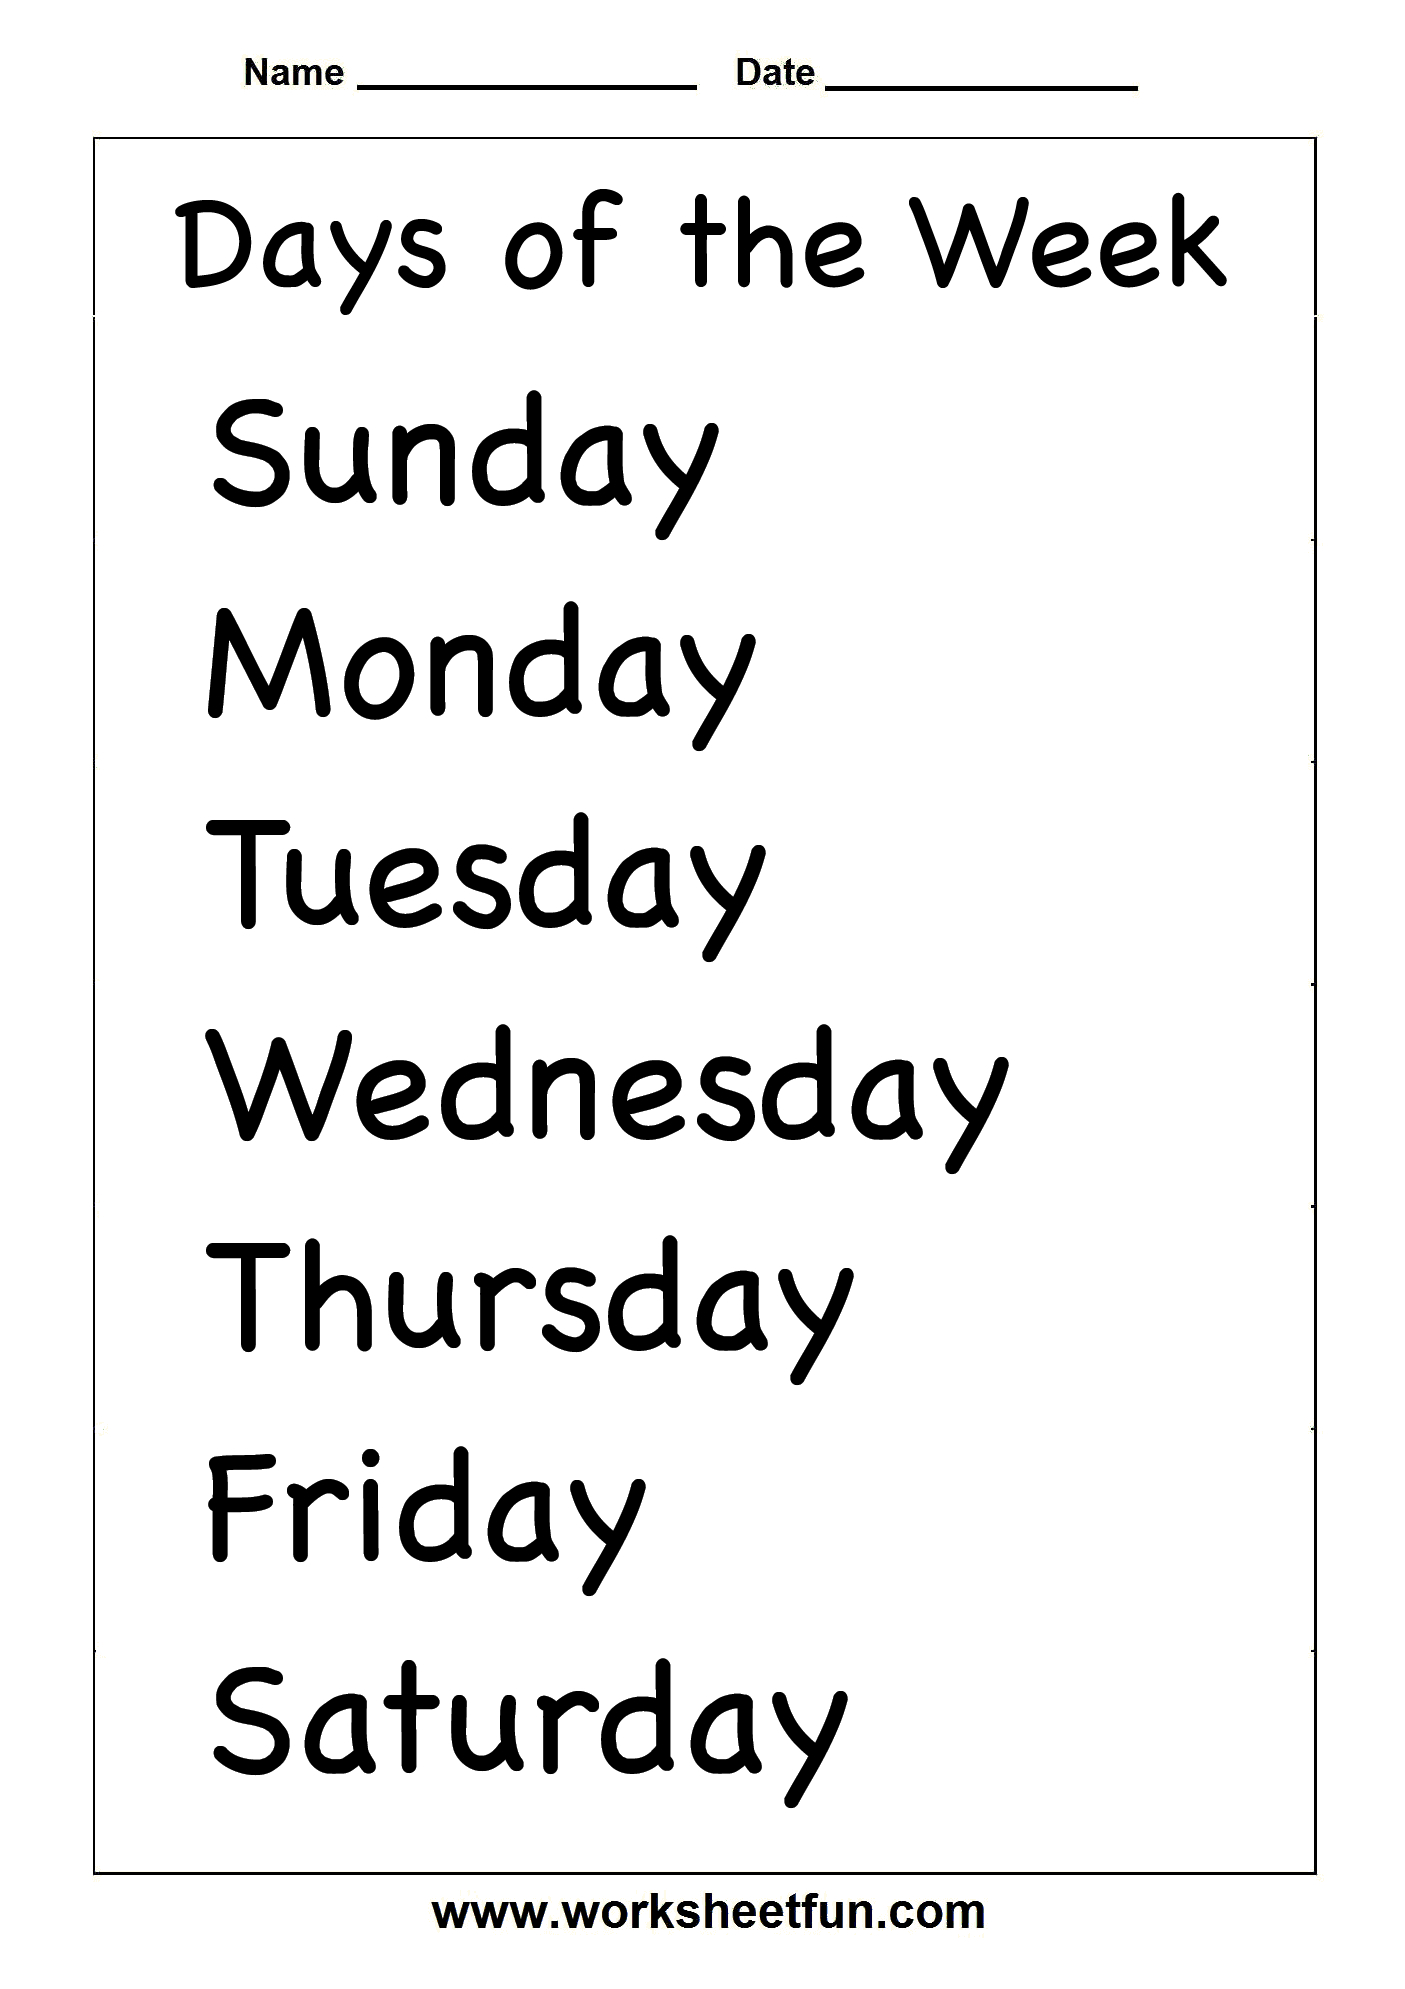 Days Of The Week – Two Worksheets / Free Printable Worksheets - Free Printable Worksheets